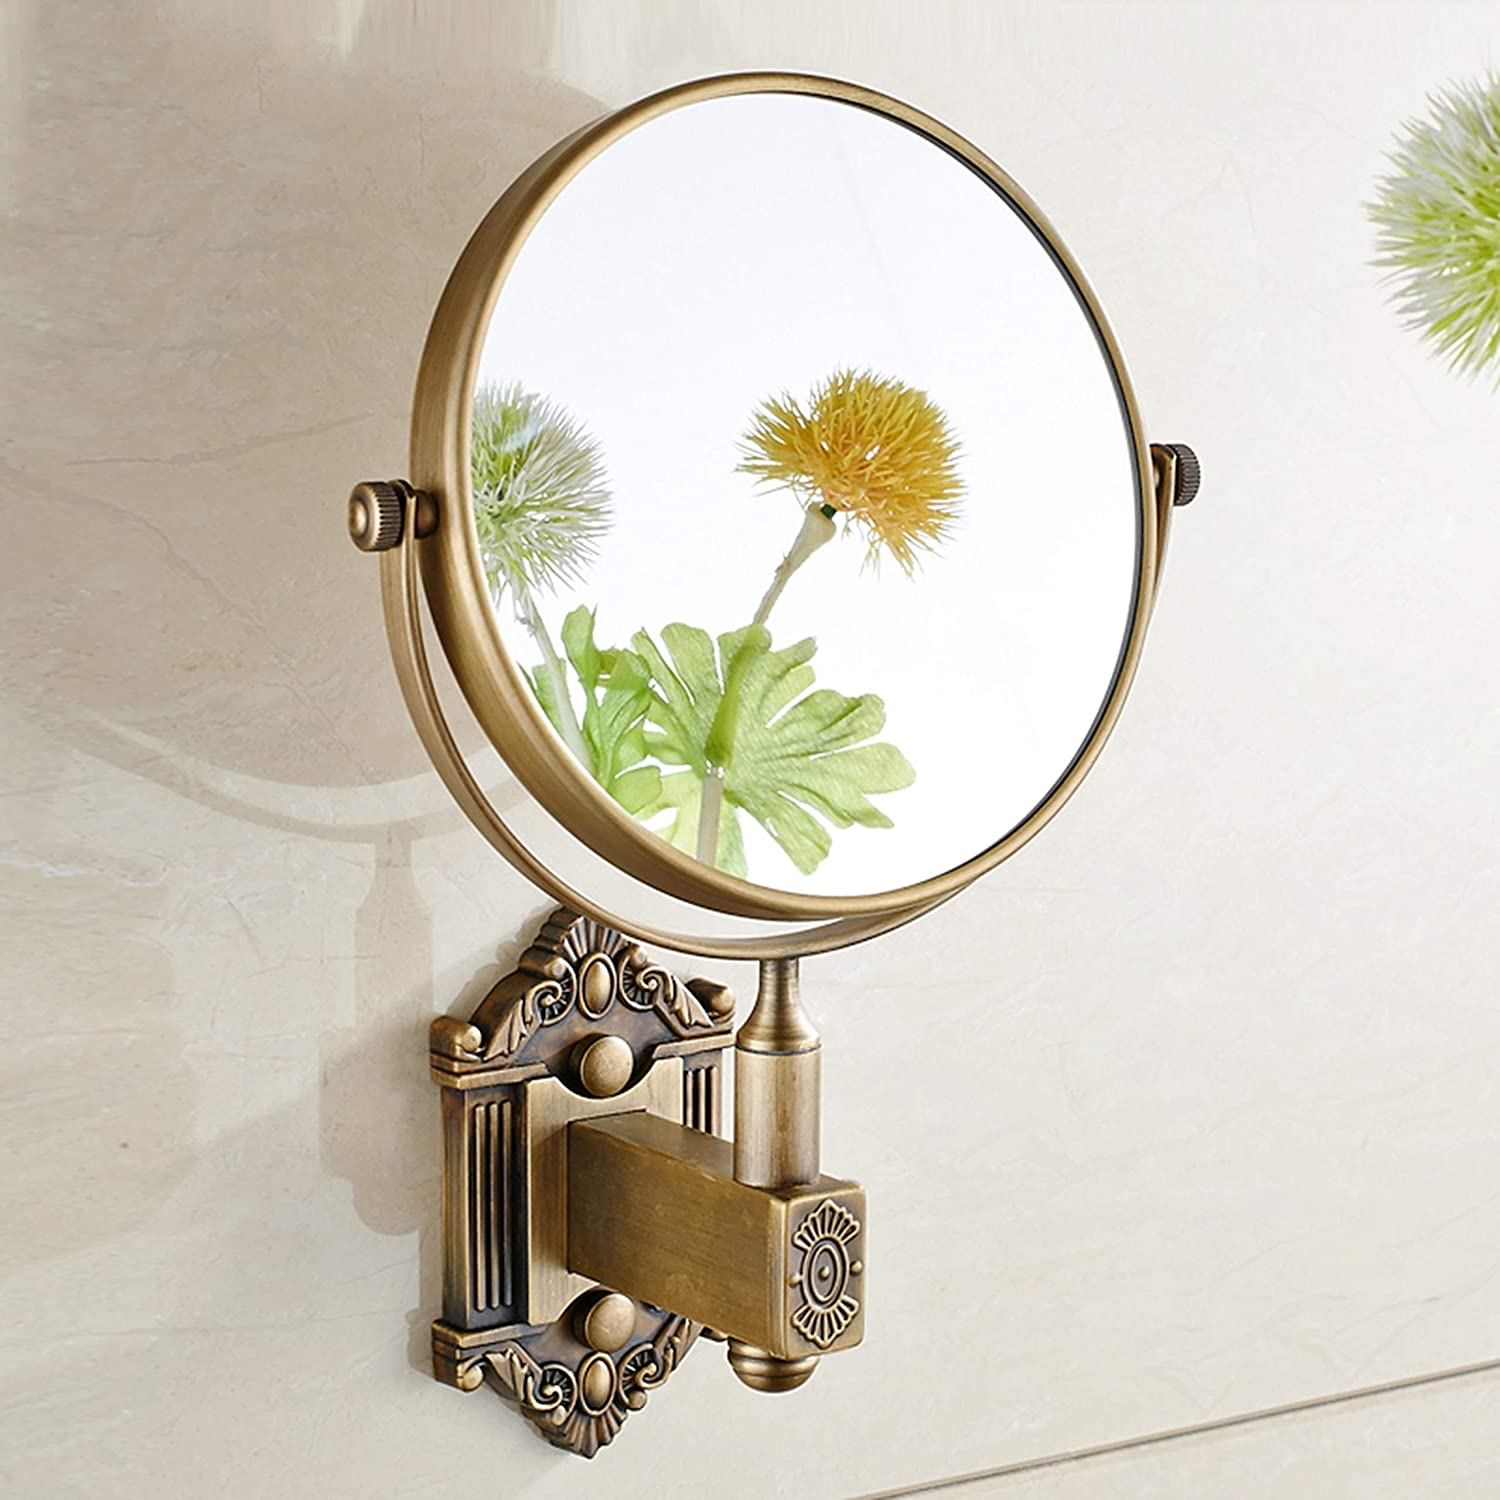 Double Sided Amplification Beauty Mirror Hotel Makeup Mirror Fold Dressing Mirror Bathroom Telescopic Mirror Wall Mount Round Mirror,6inch